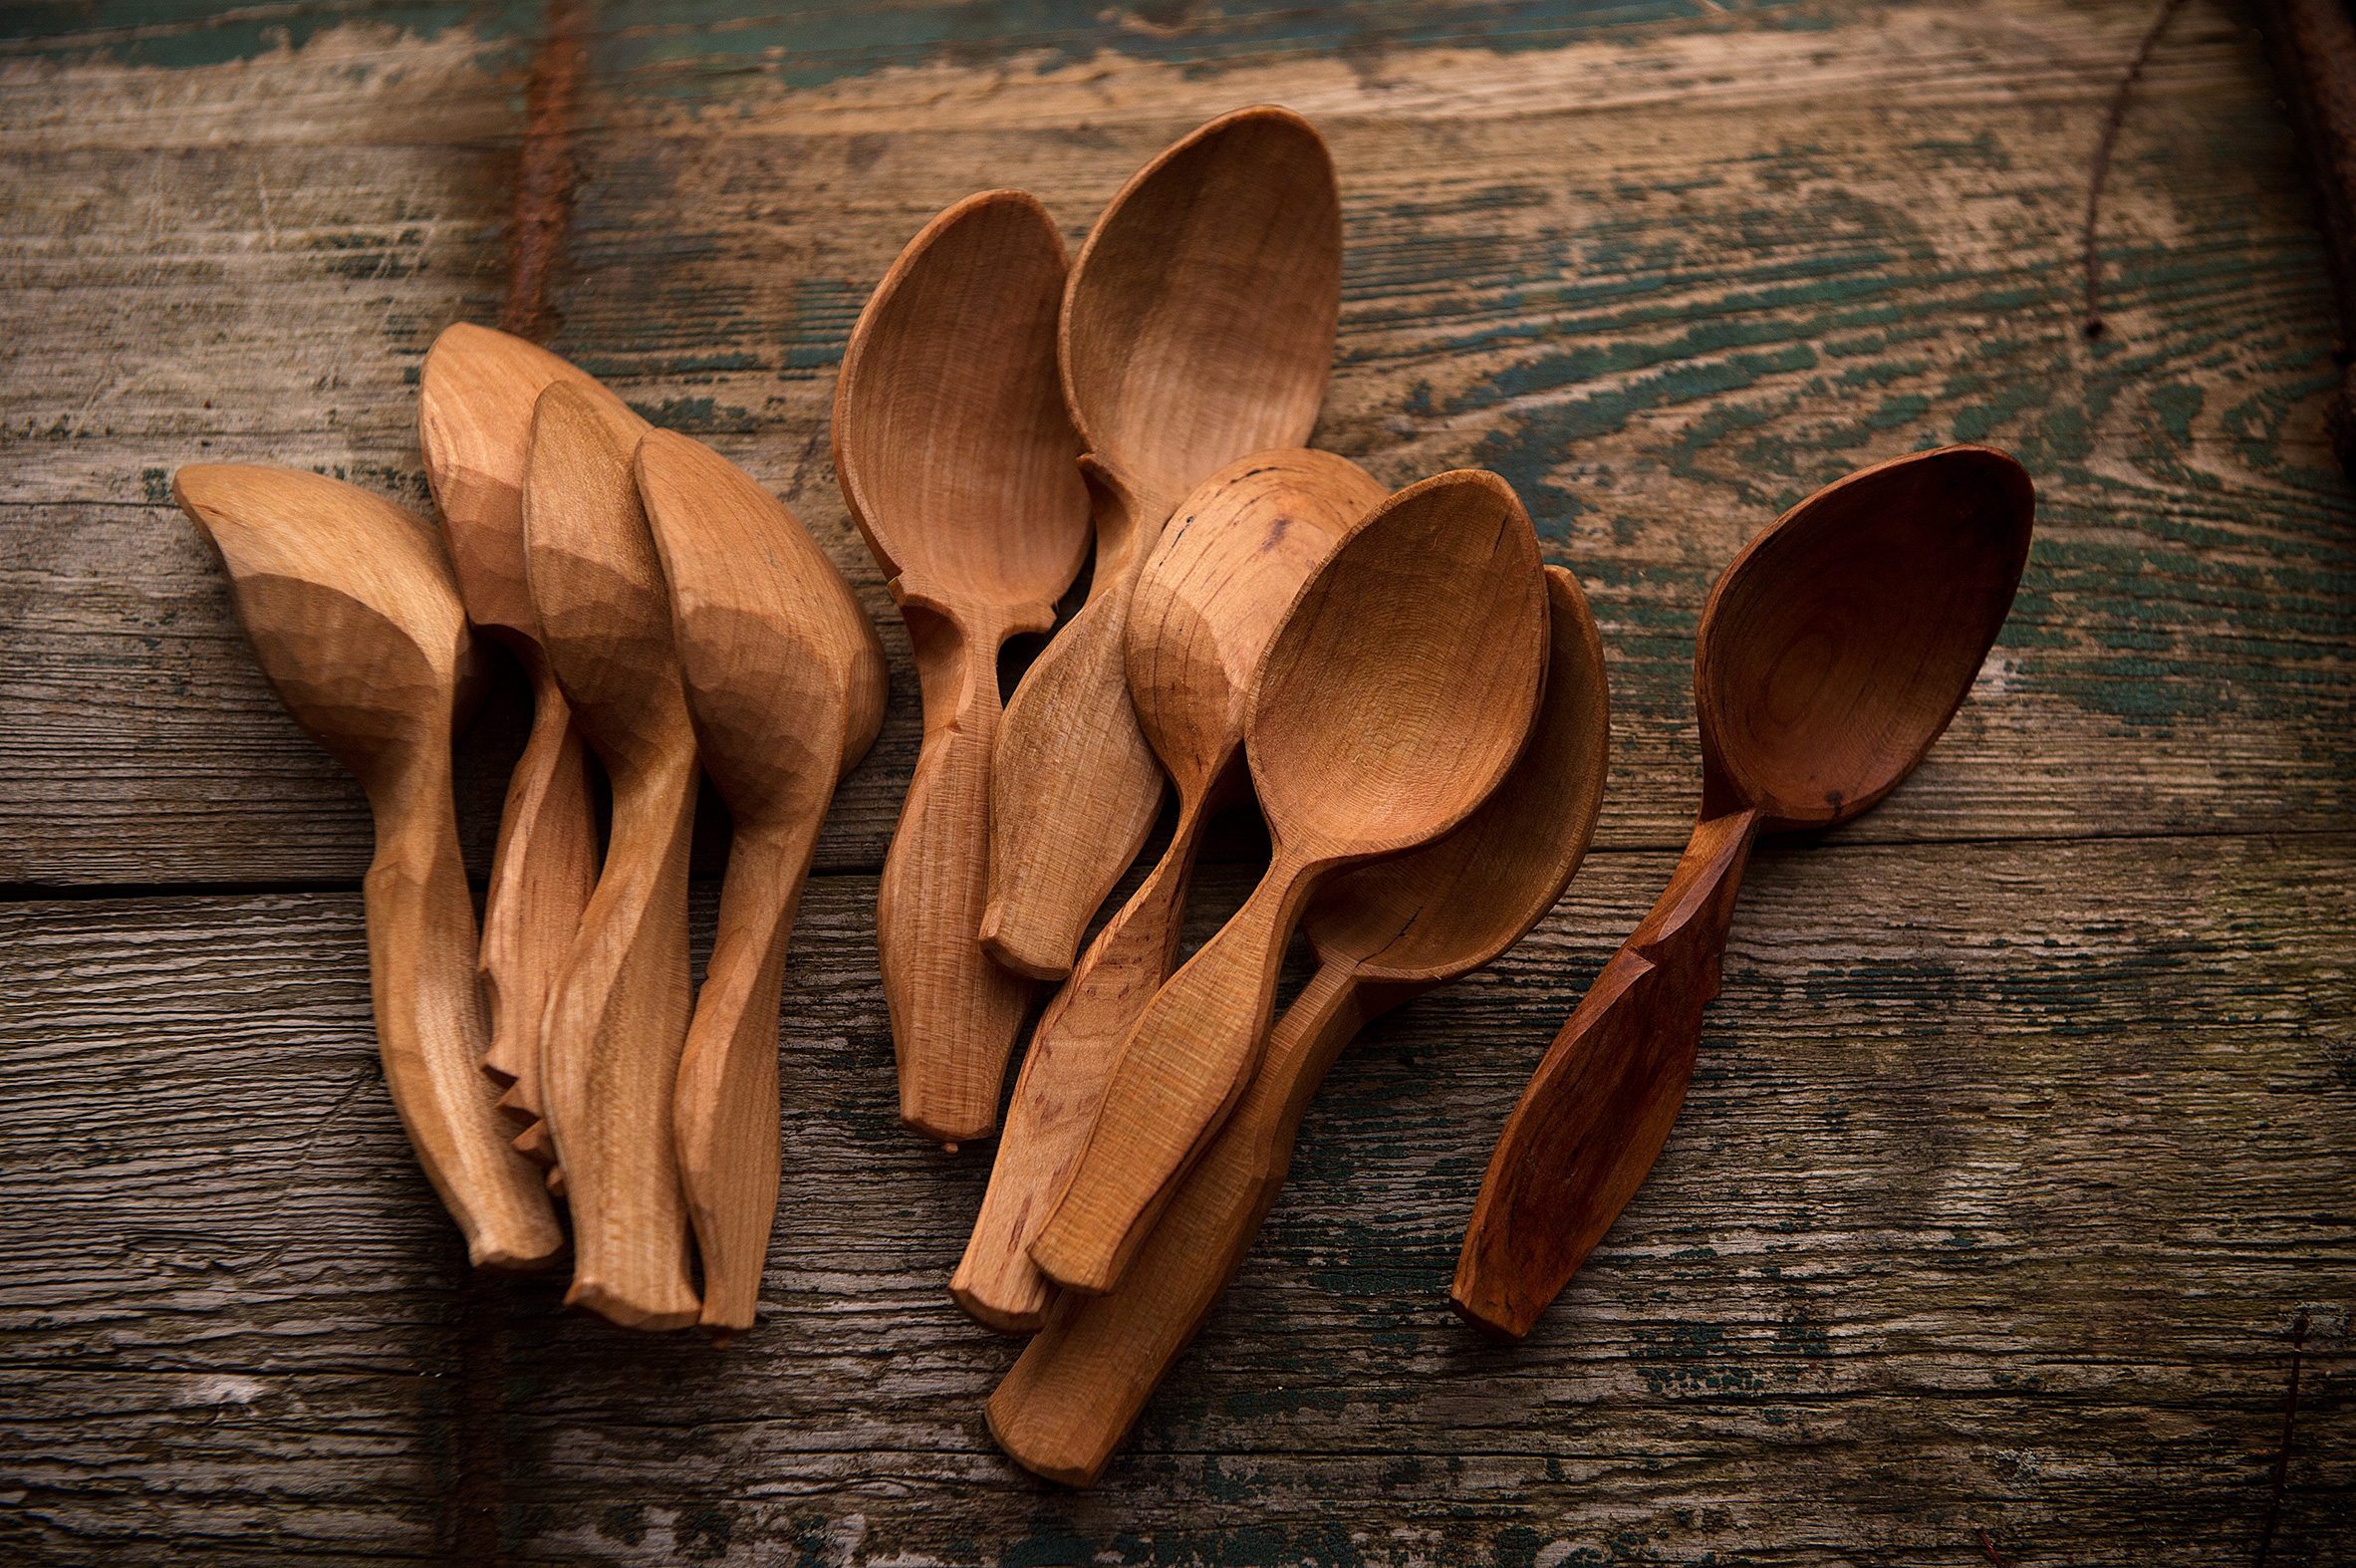 Eating Spoons - Take home a hand carved eating spoon from my latest batch of black cherry